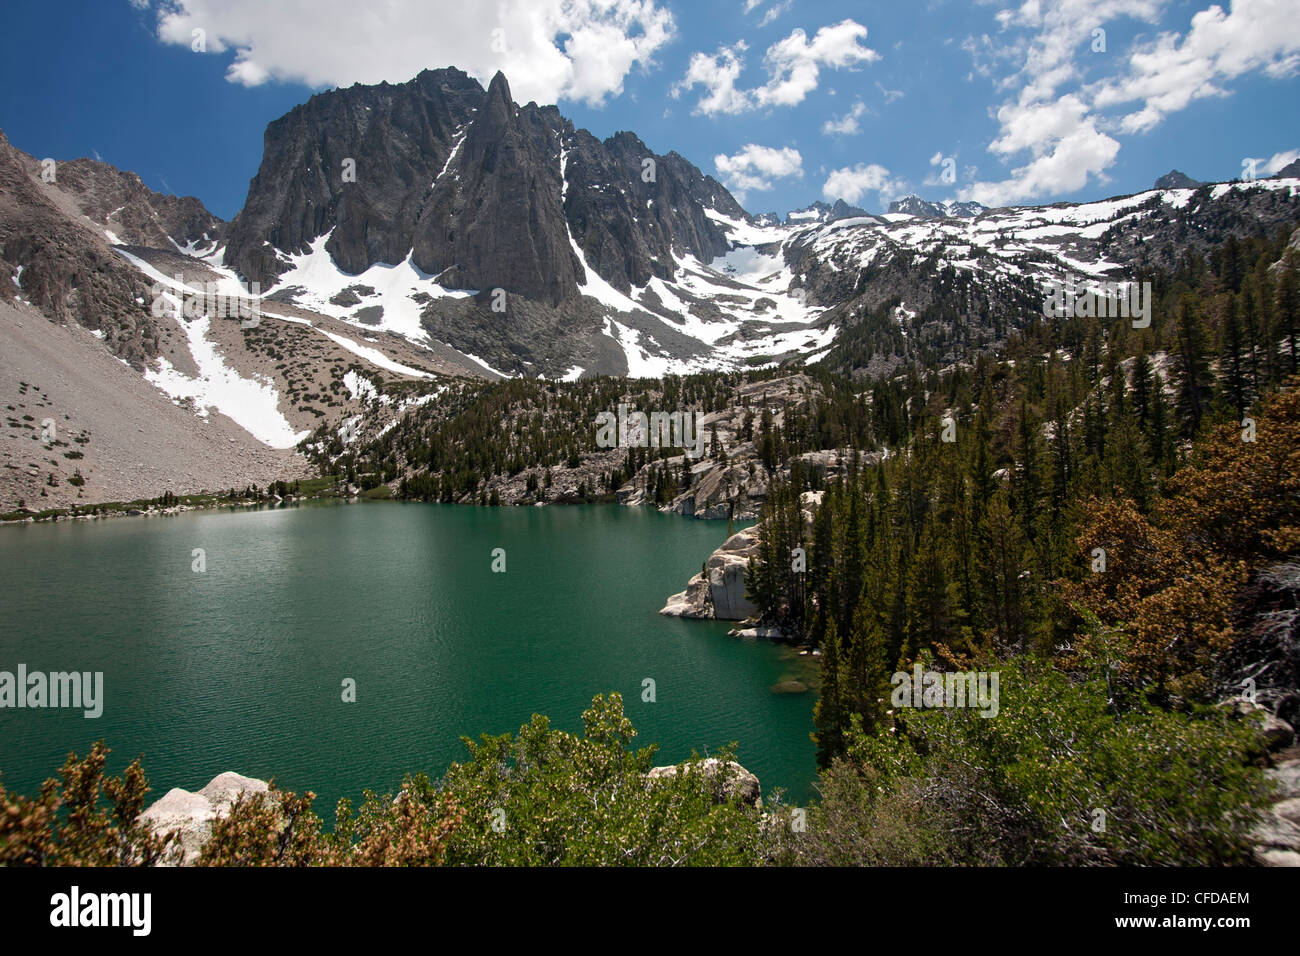 Temple Crag and Fifth Lake from the Big Pine Lakes Trail in the John Muir Wilderness, Sierra Mountain Range, California, - Stock Image